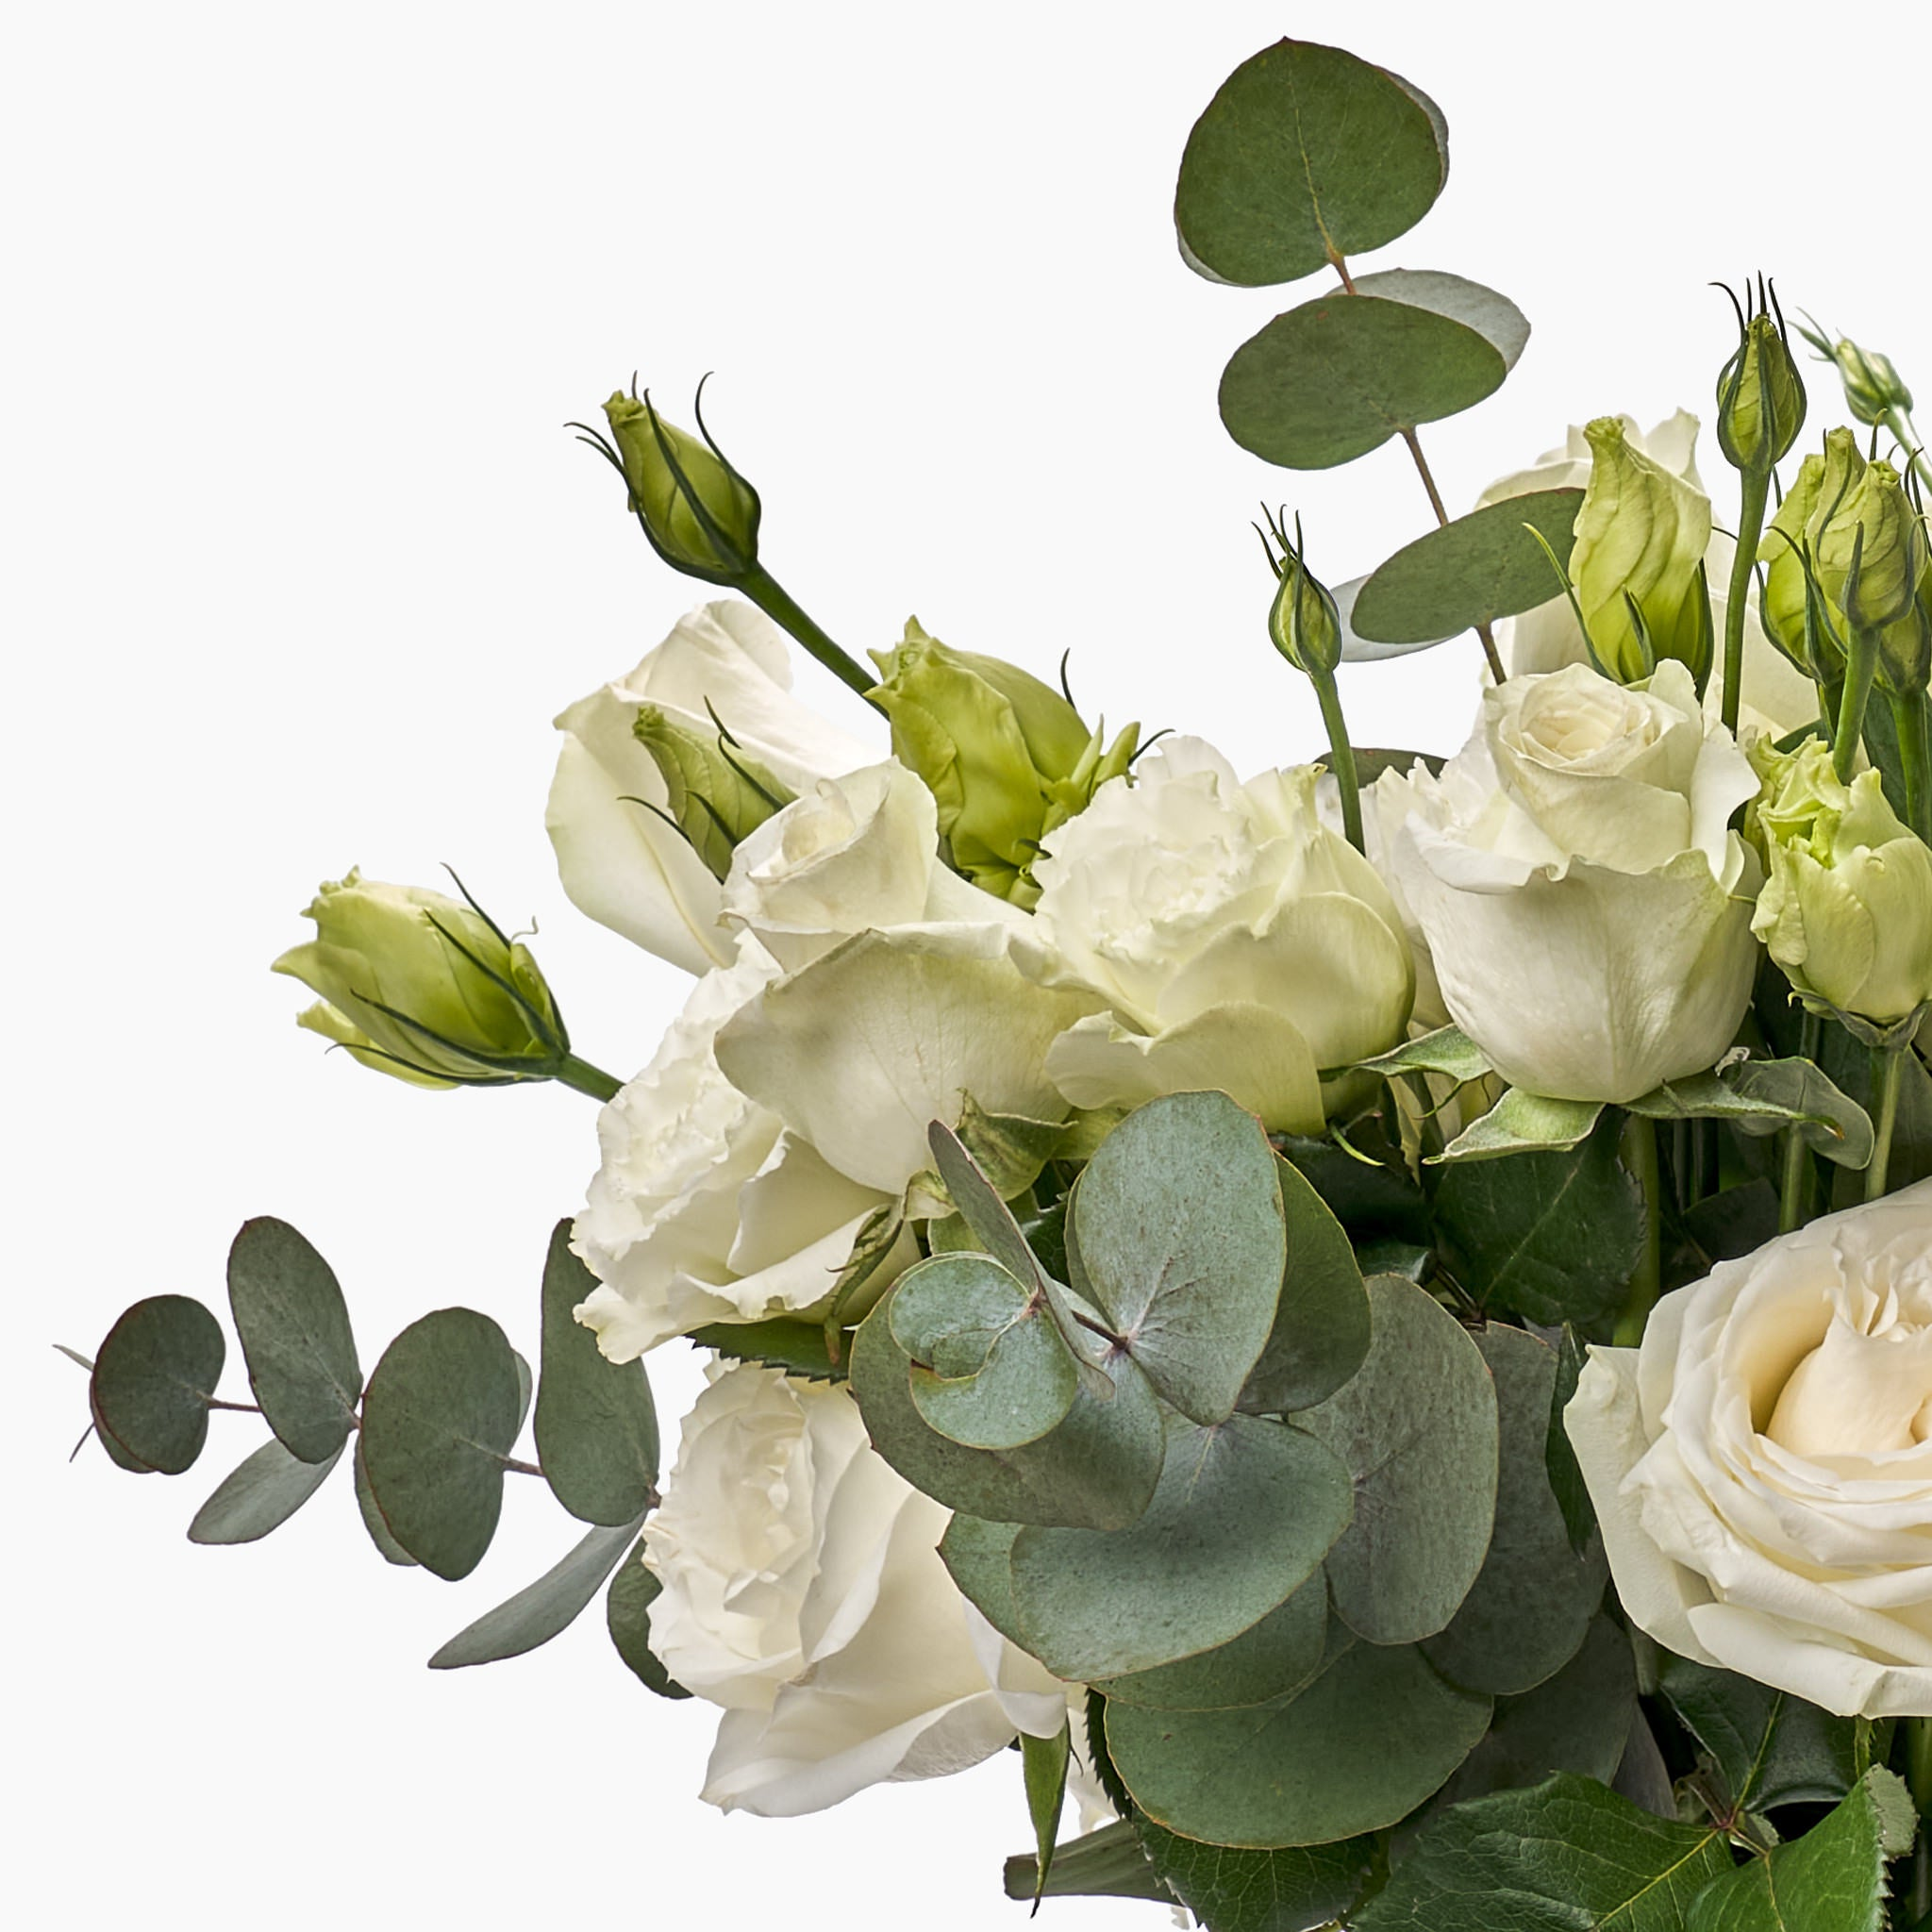 Photo of our Moondance flower arrangement including the white rose, lisianthus and pennygum. Julep offers flower delivery Johannesburg and flowers in a box.